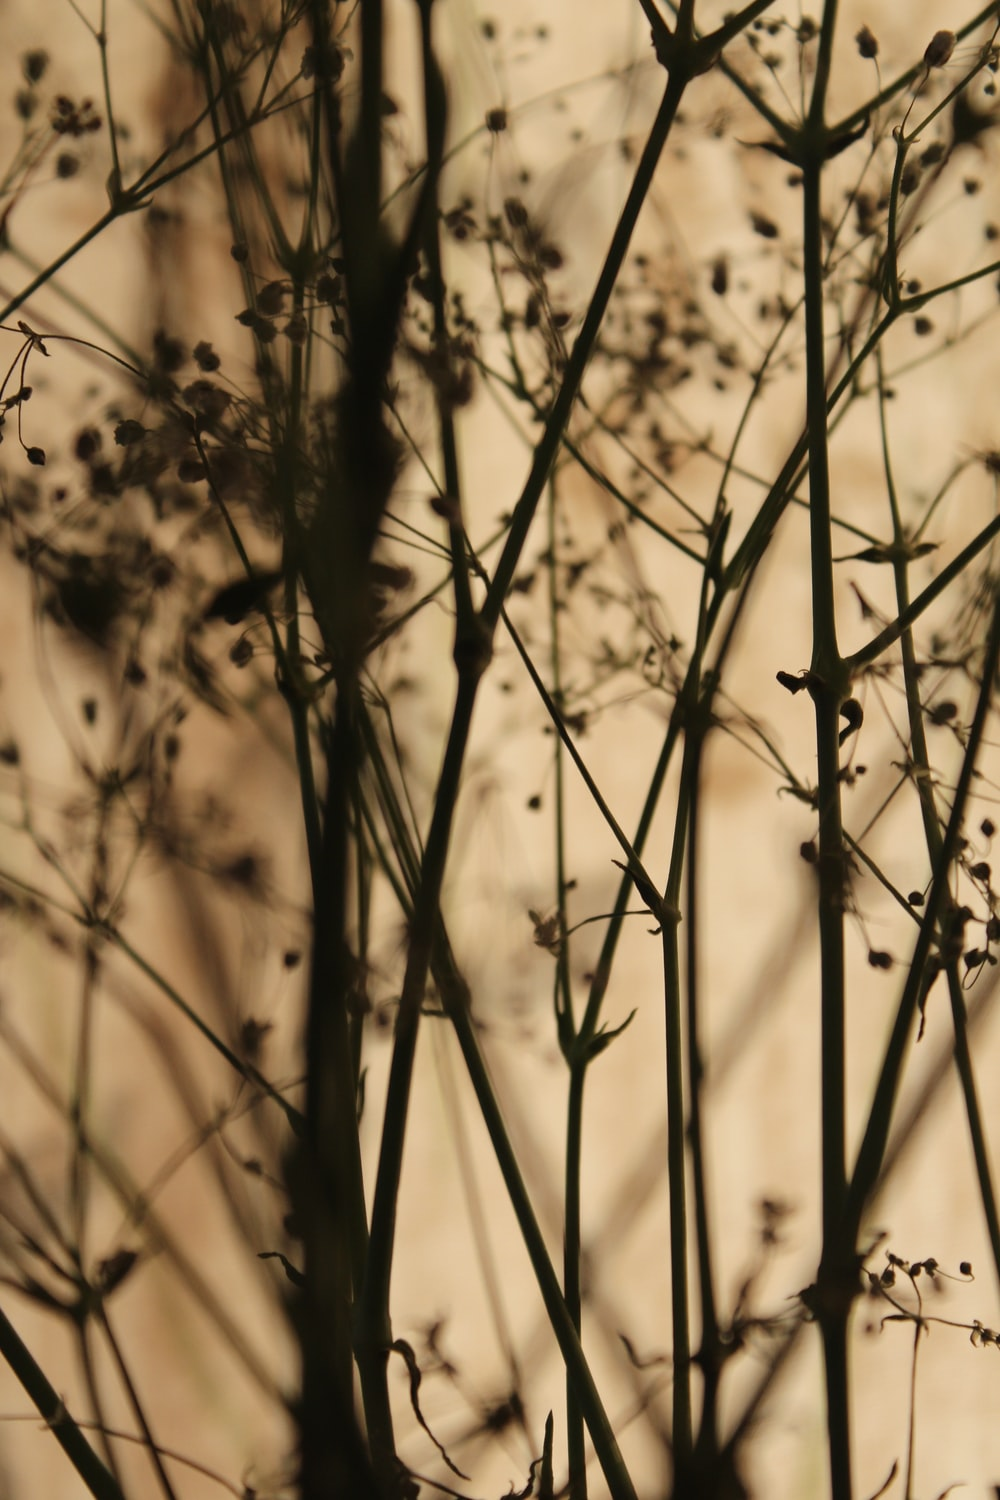 silhouette of plant stems